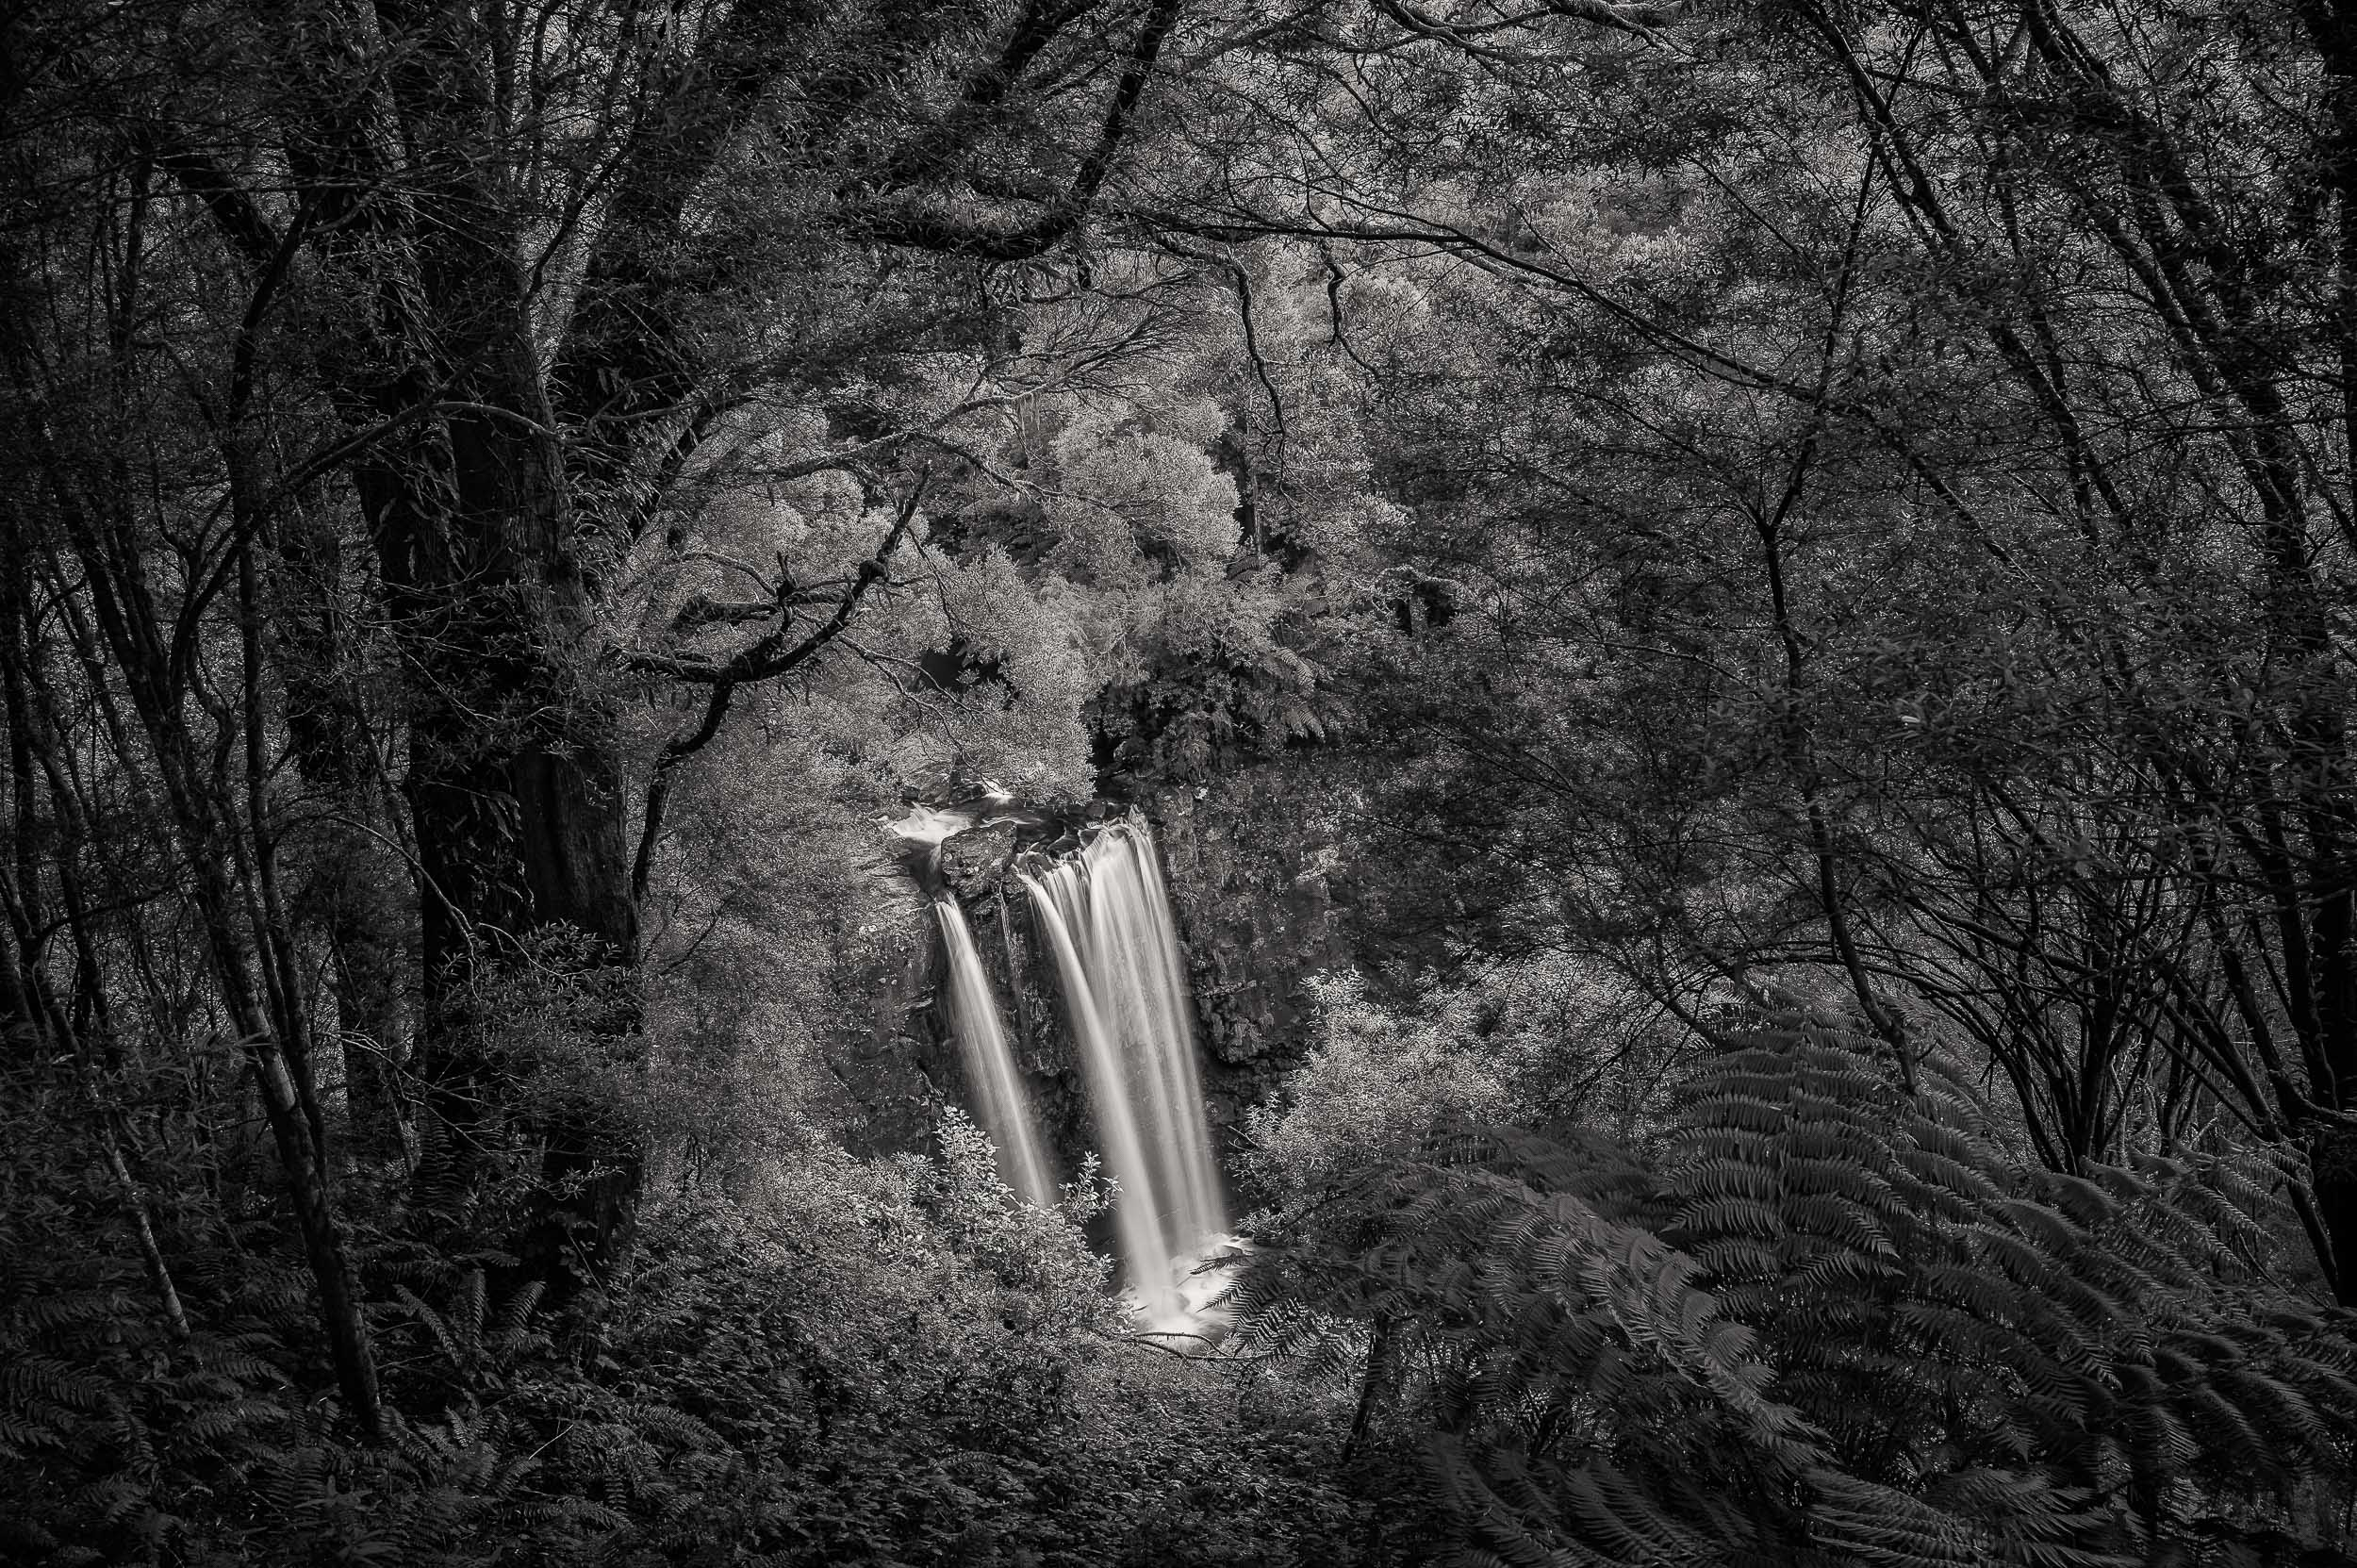 Lookout, Erskine Falls, Great Otway National Park